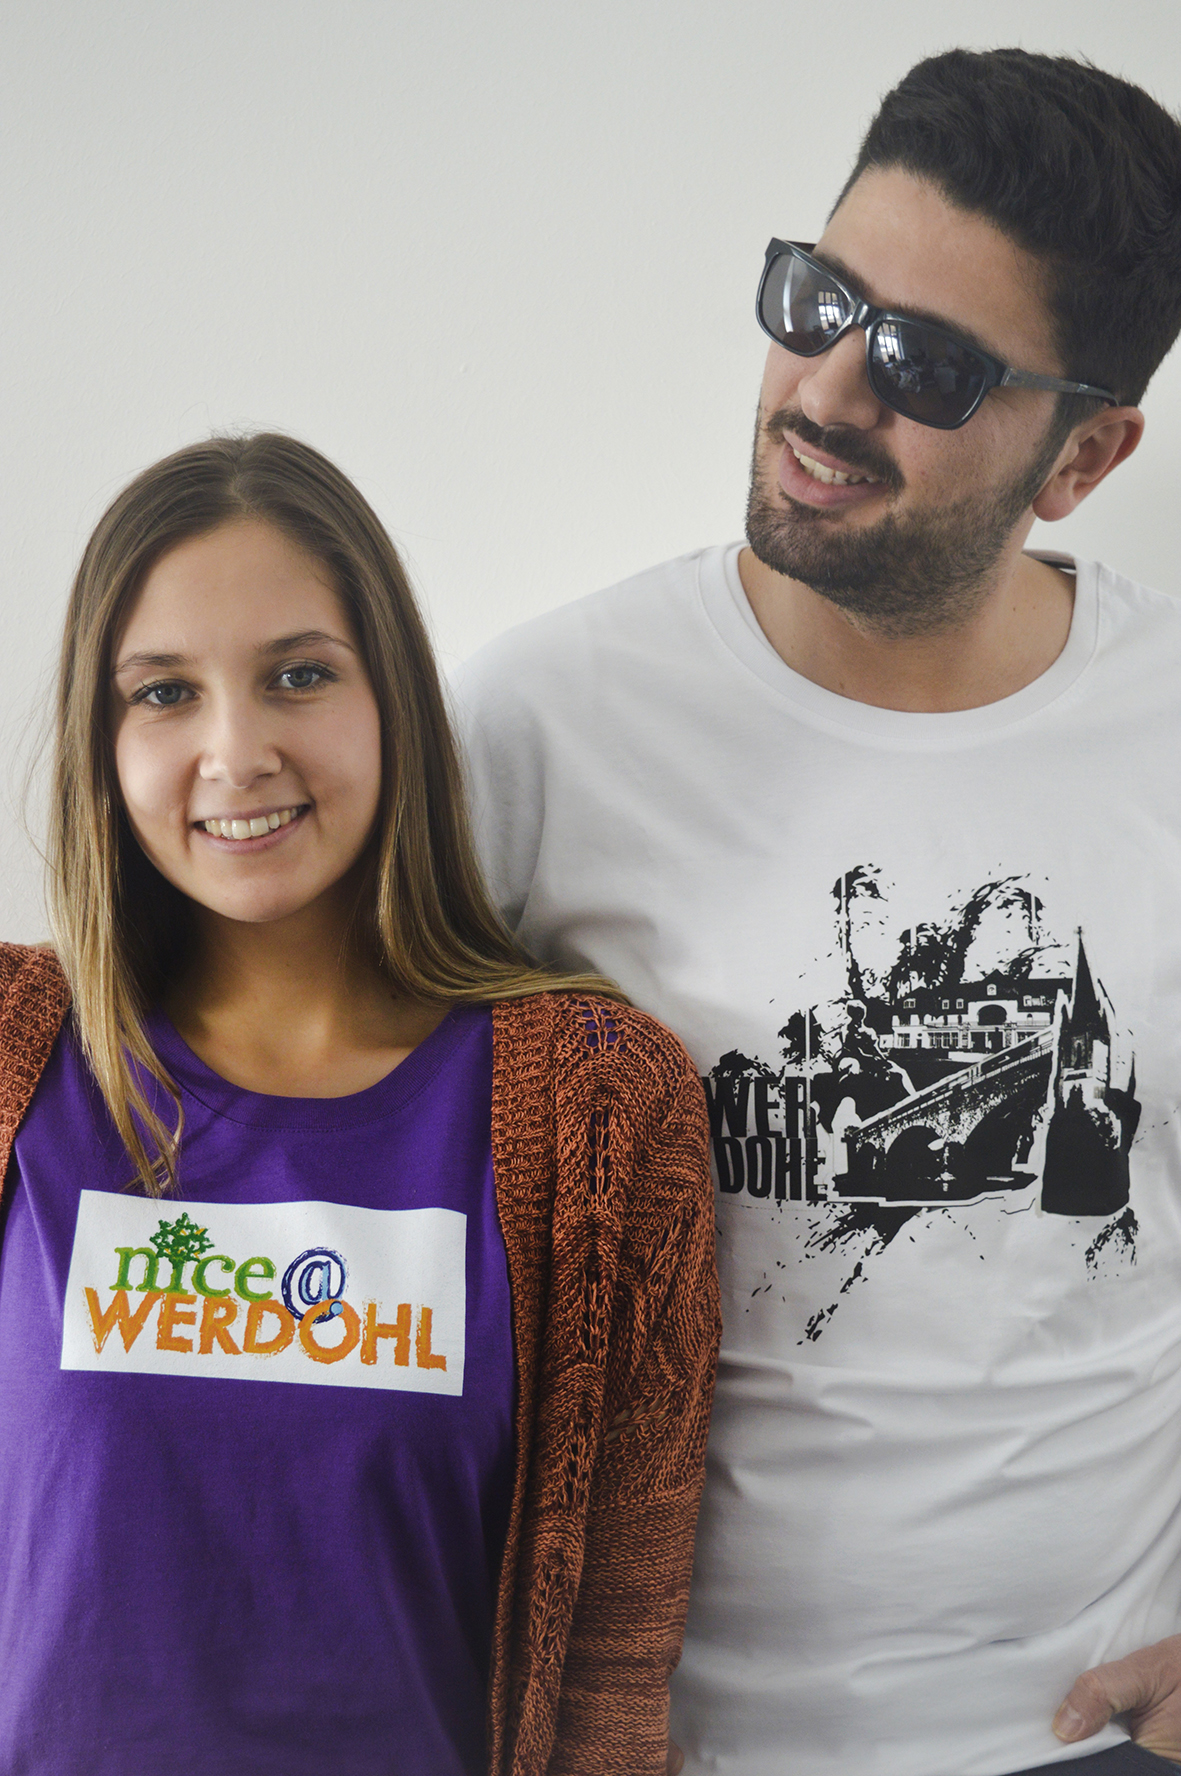 Werdohl Marketing